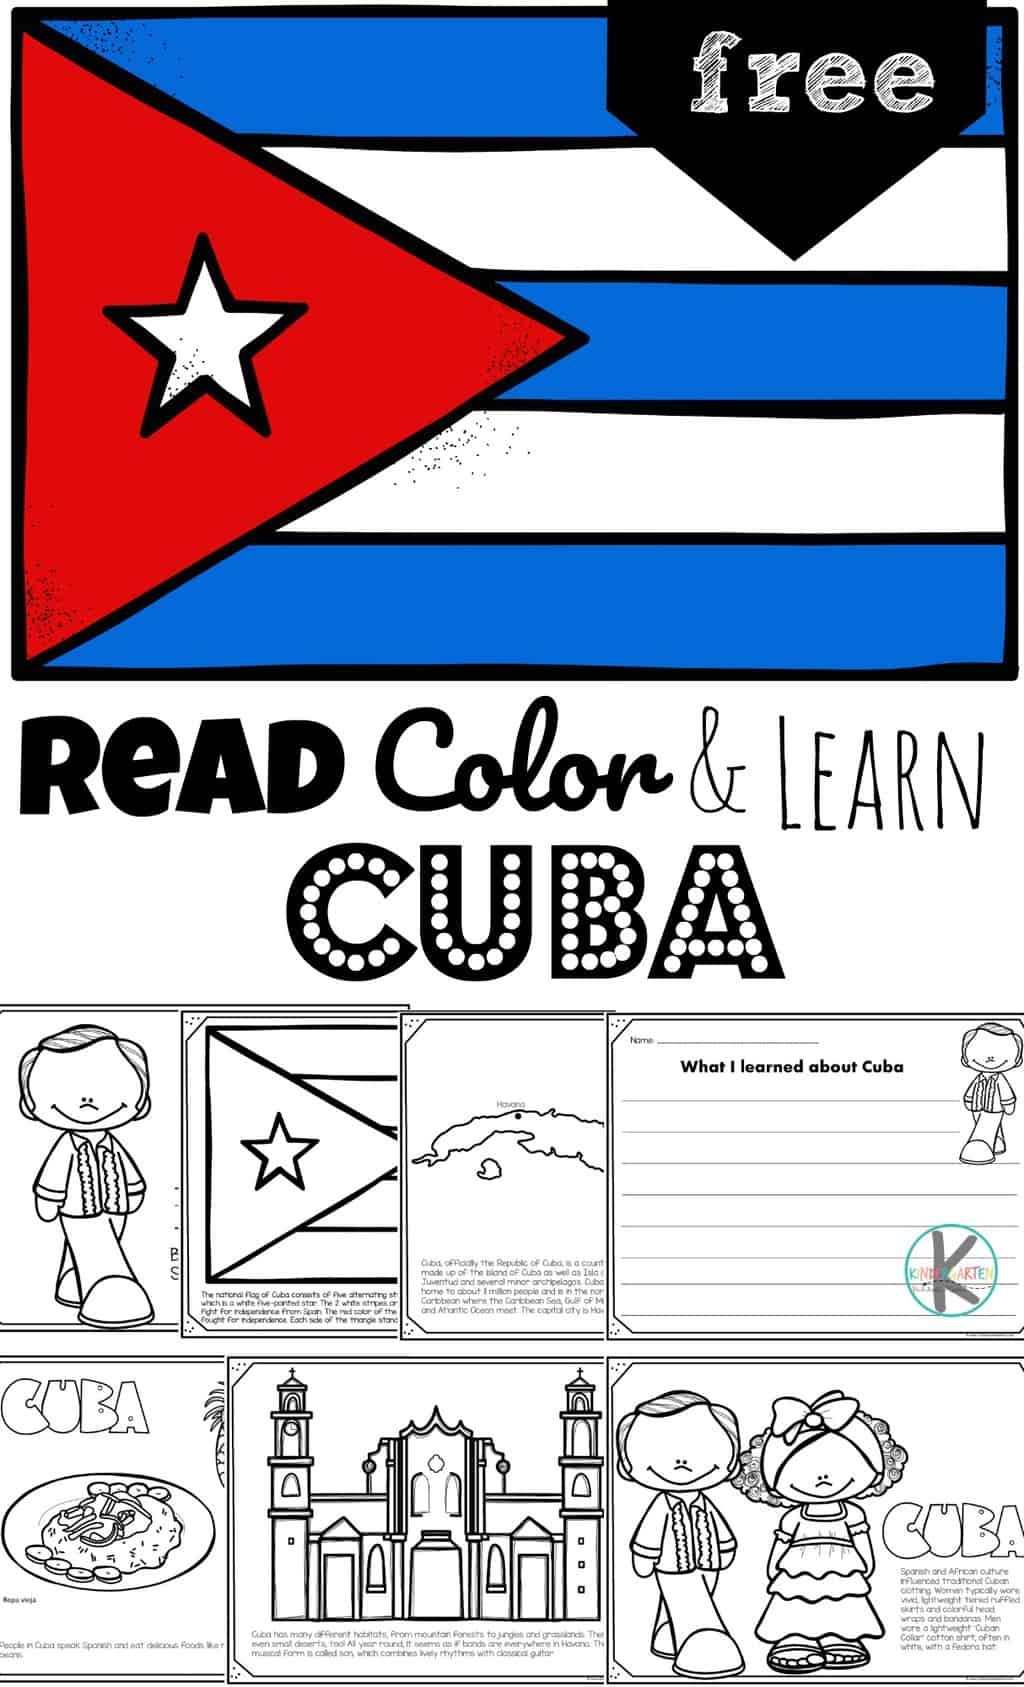 hight resolution of FREE Read Color and Learn about CUBA